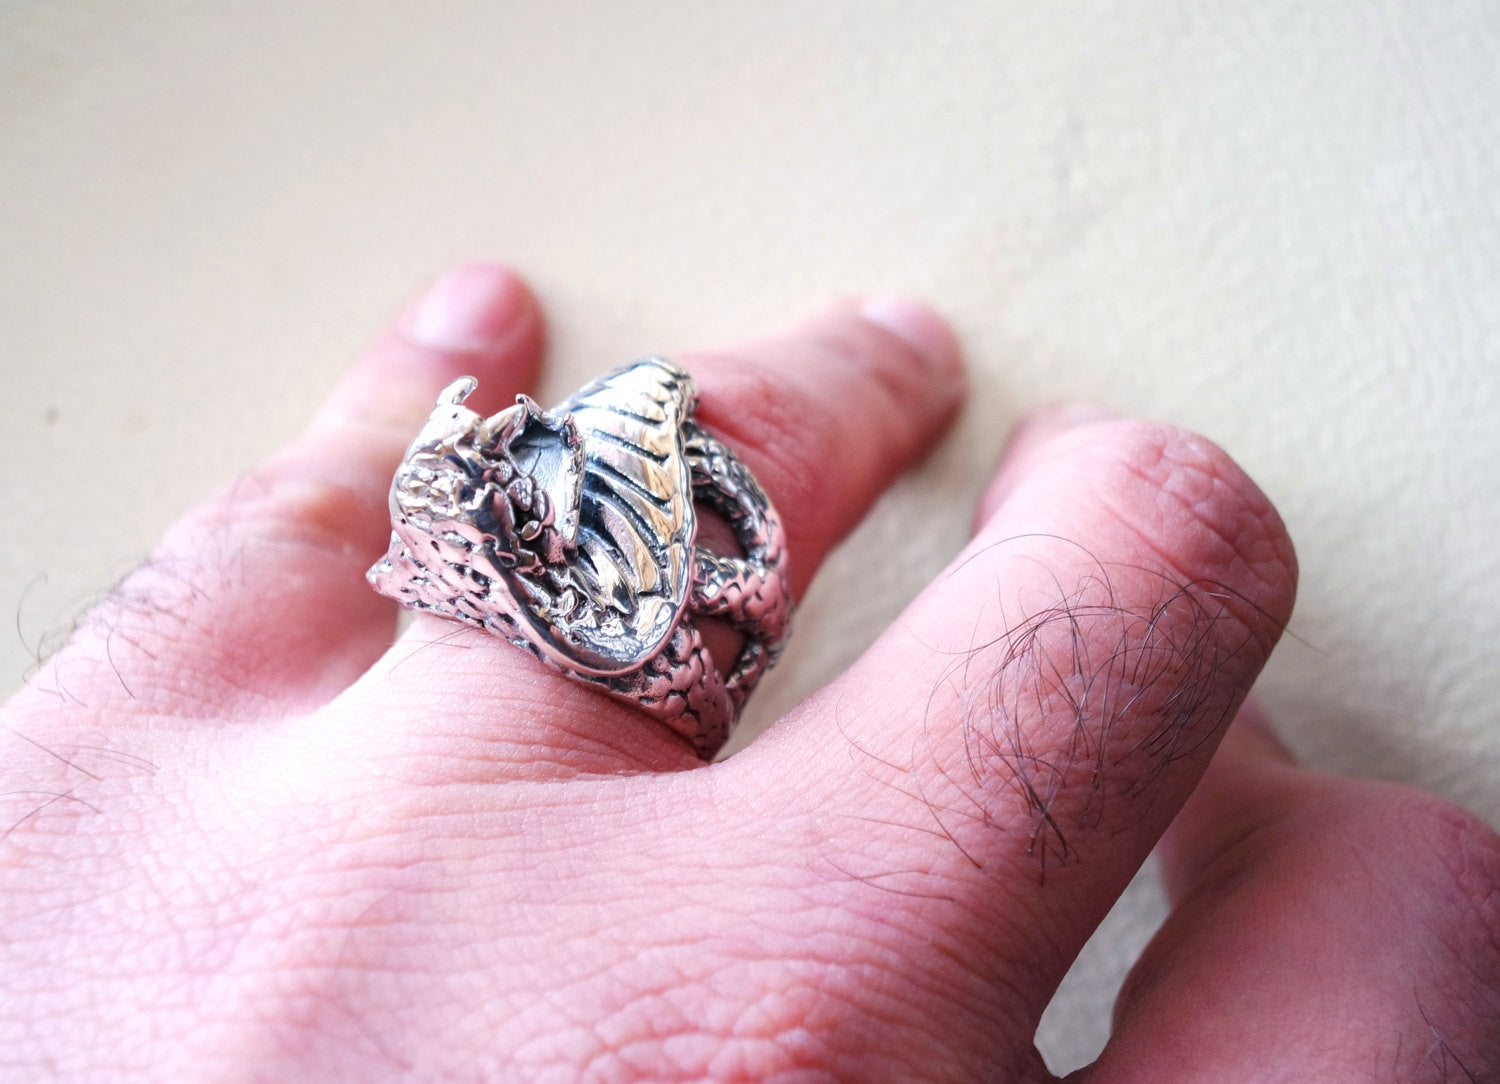 huge cobra snake ring heavy sterling silver 925 man biker ring all sizes handmade animal head jewelry fast shipping detailed craftsmanship